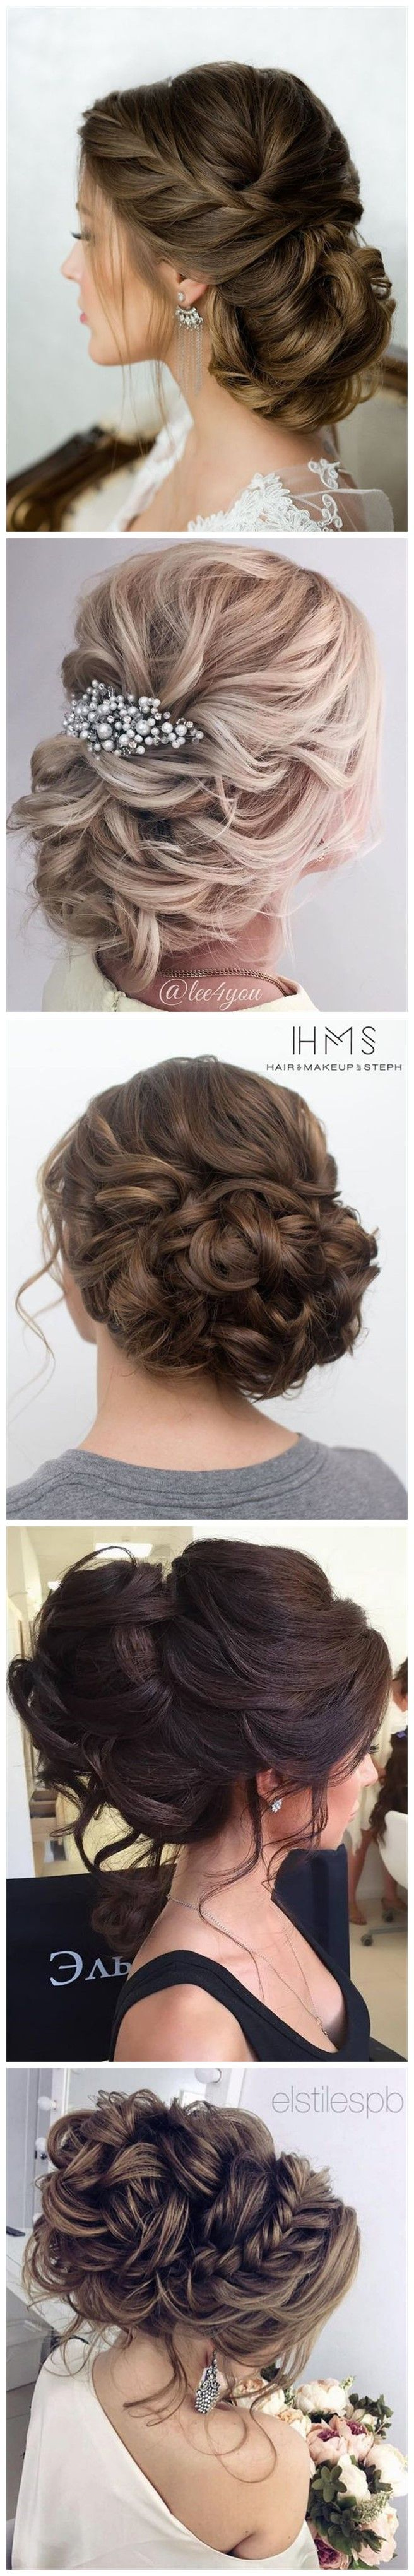 225 best Hair images on Pinterest